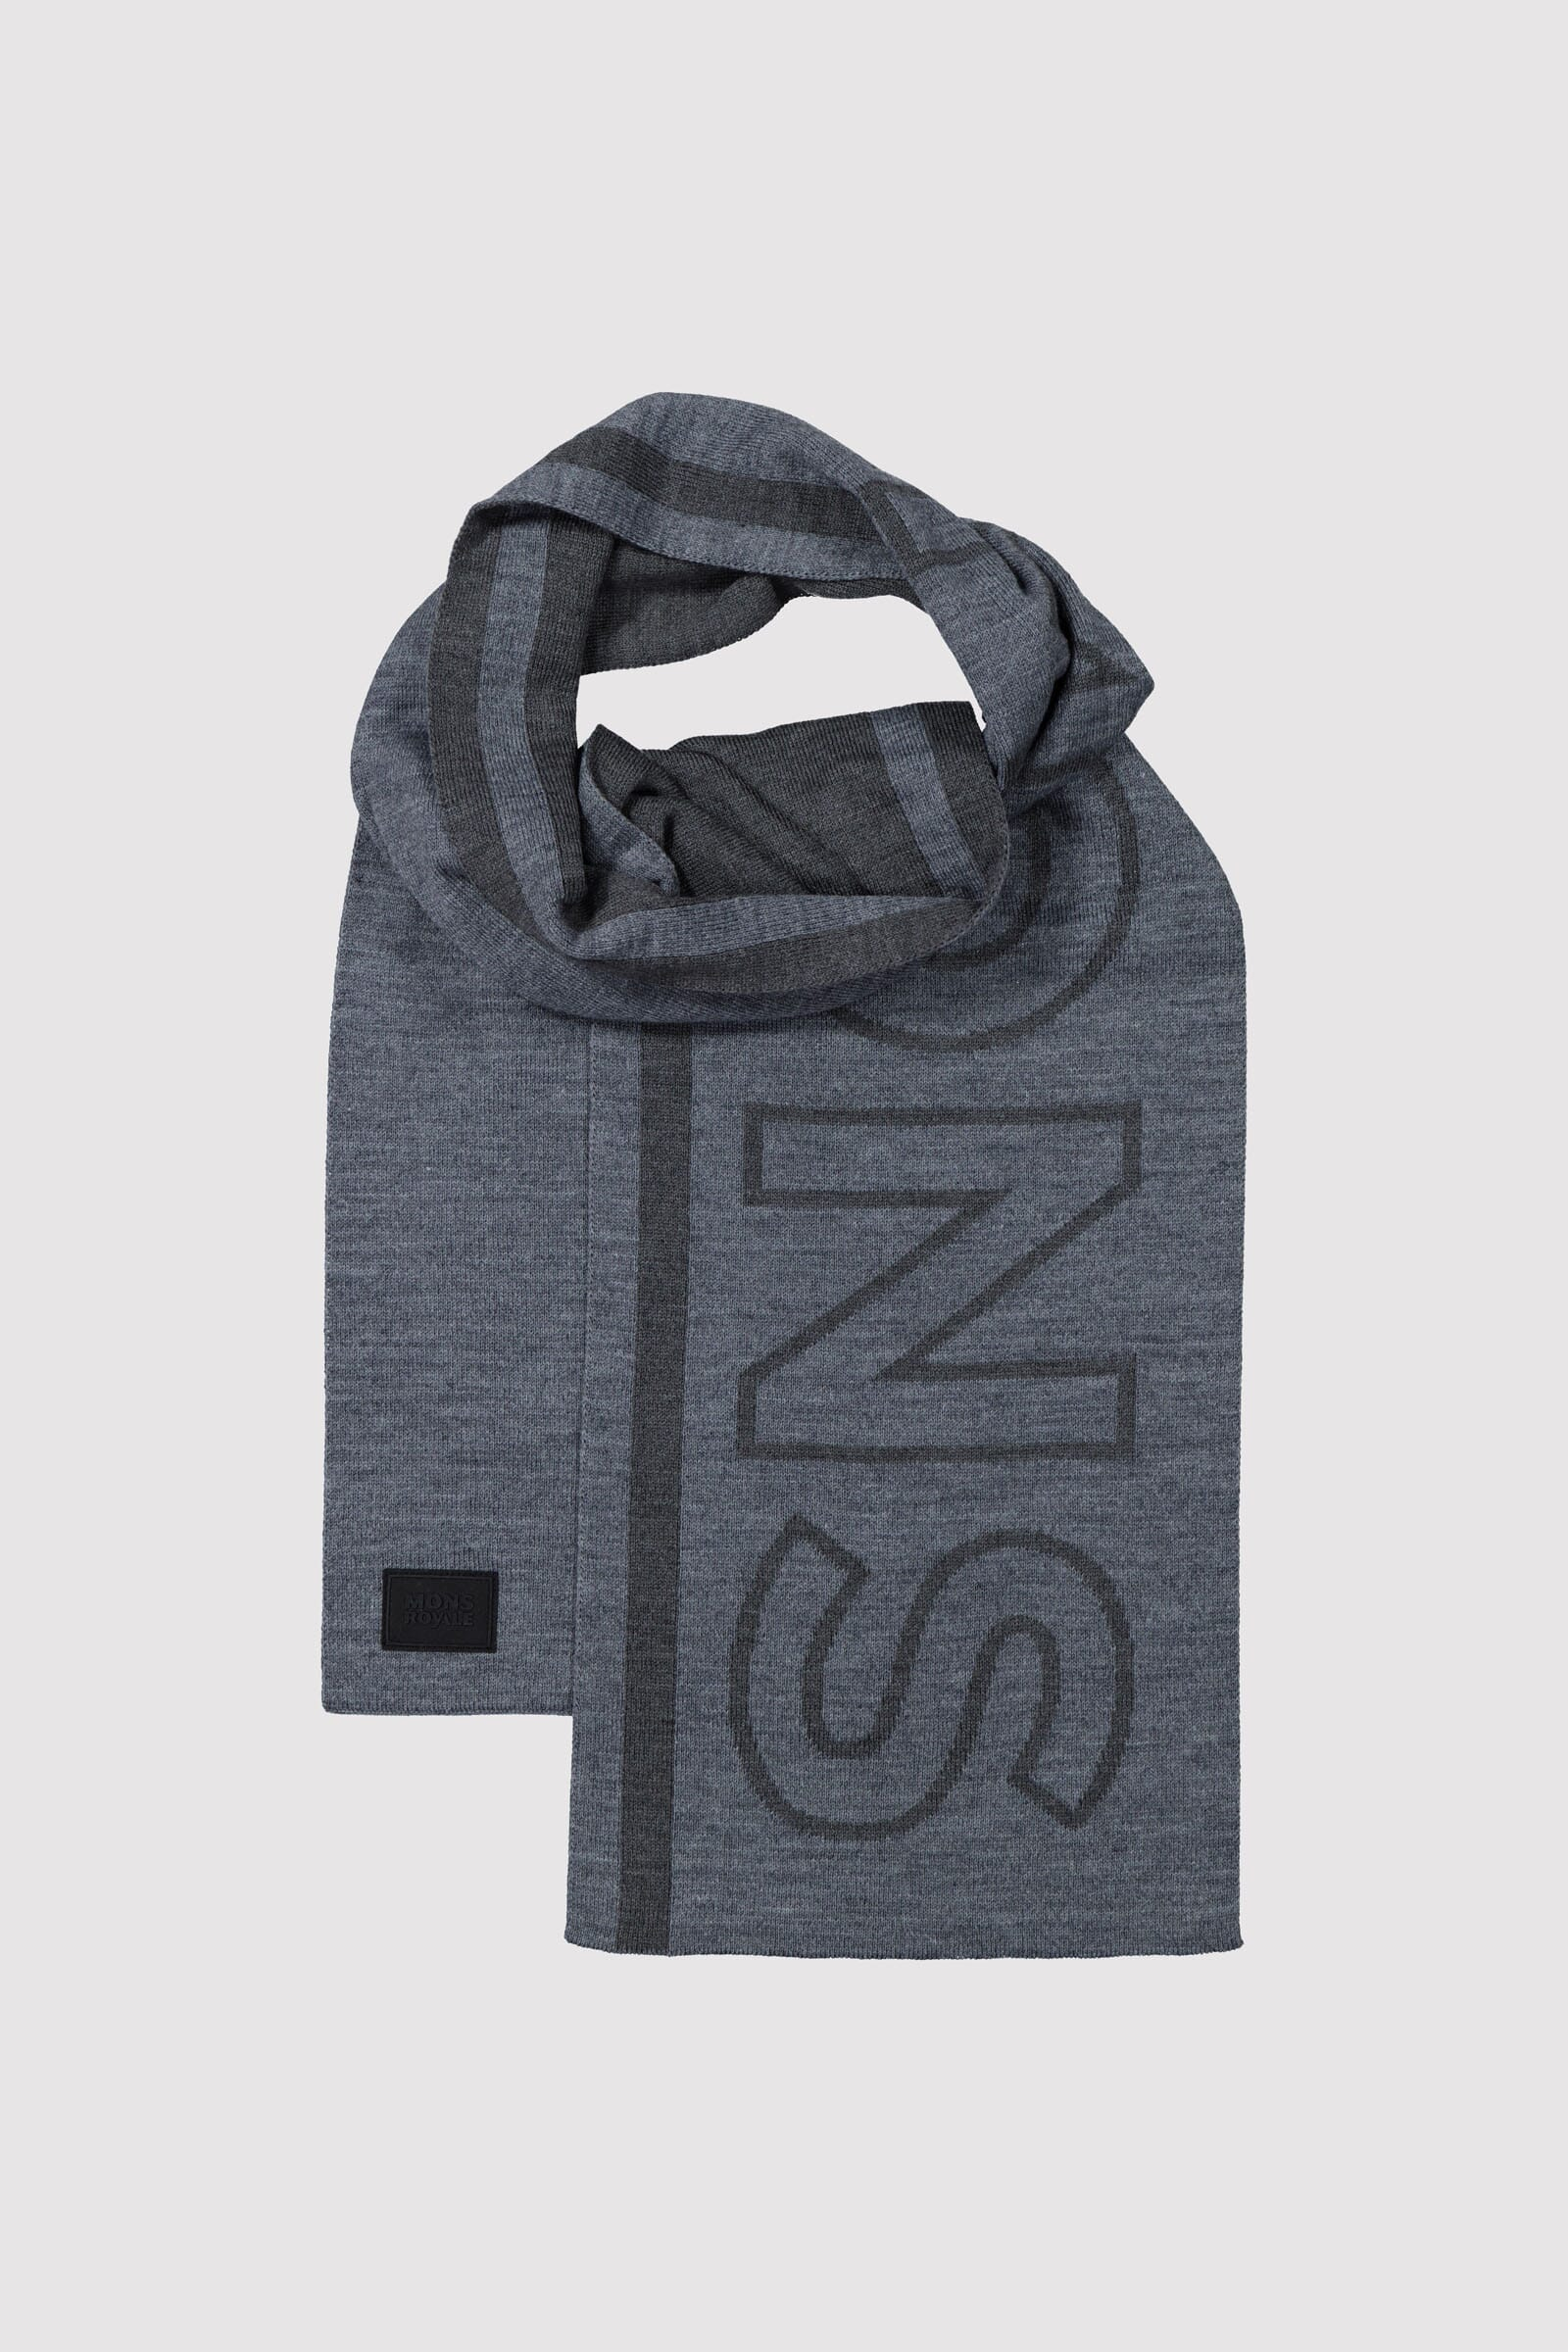 Team Scarf - Charcoal Marl